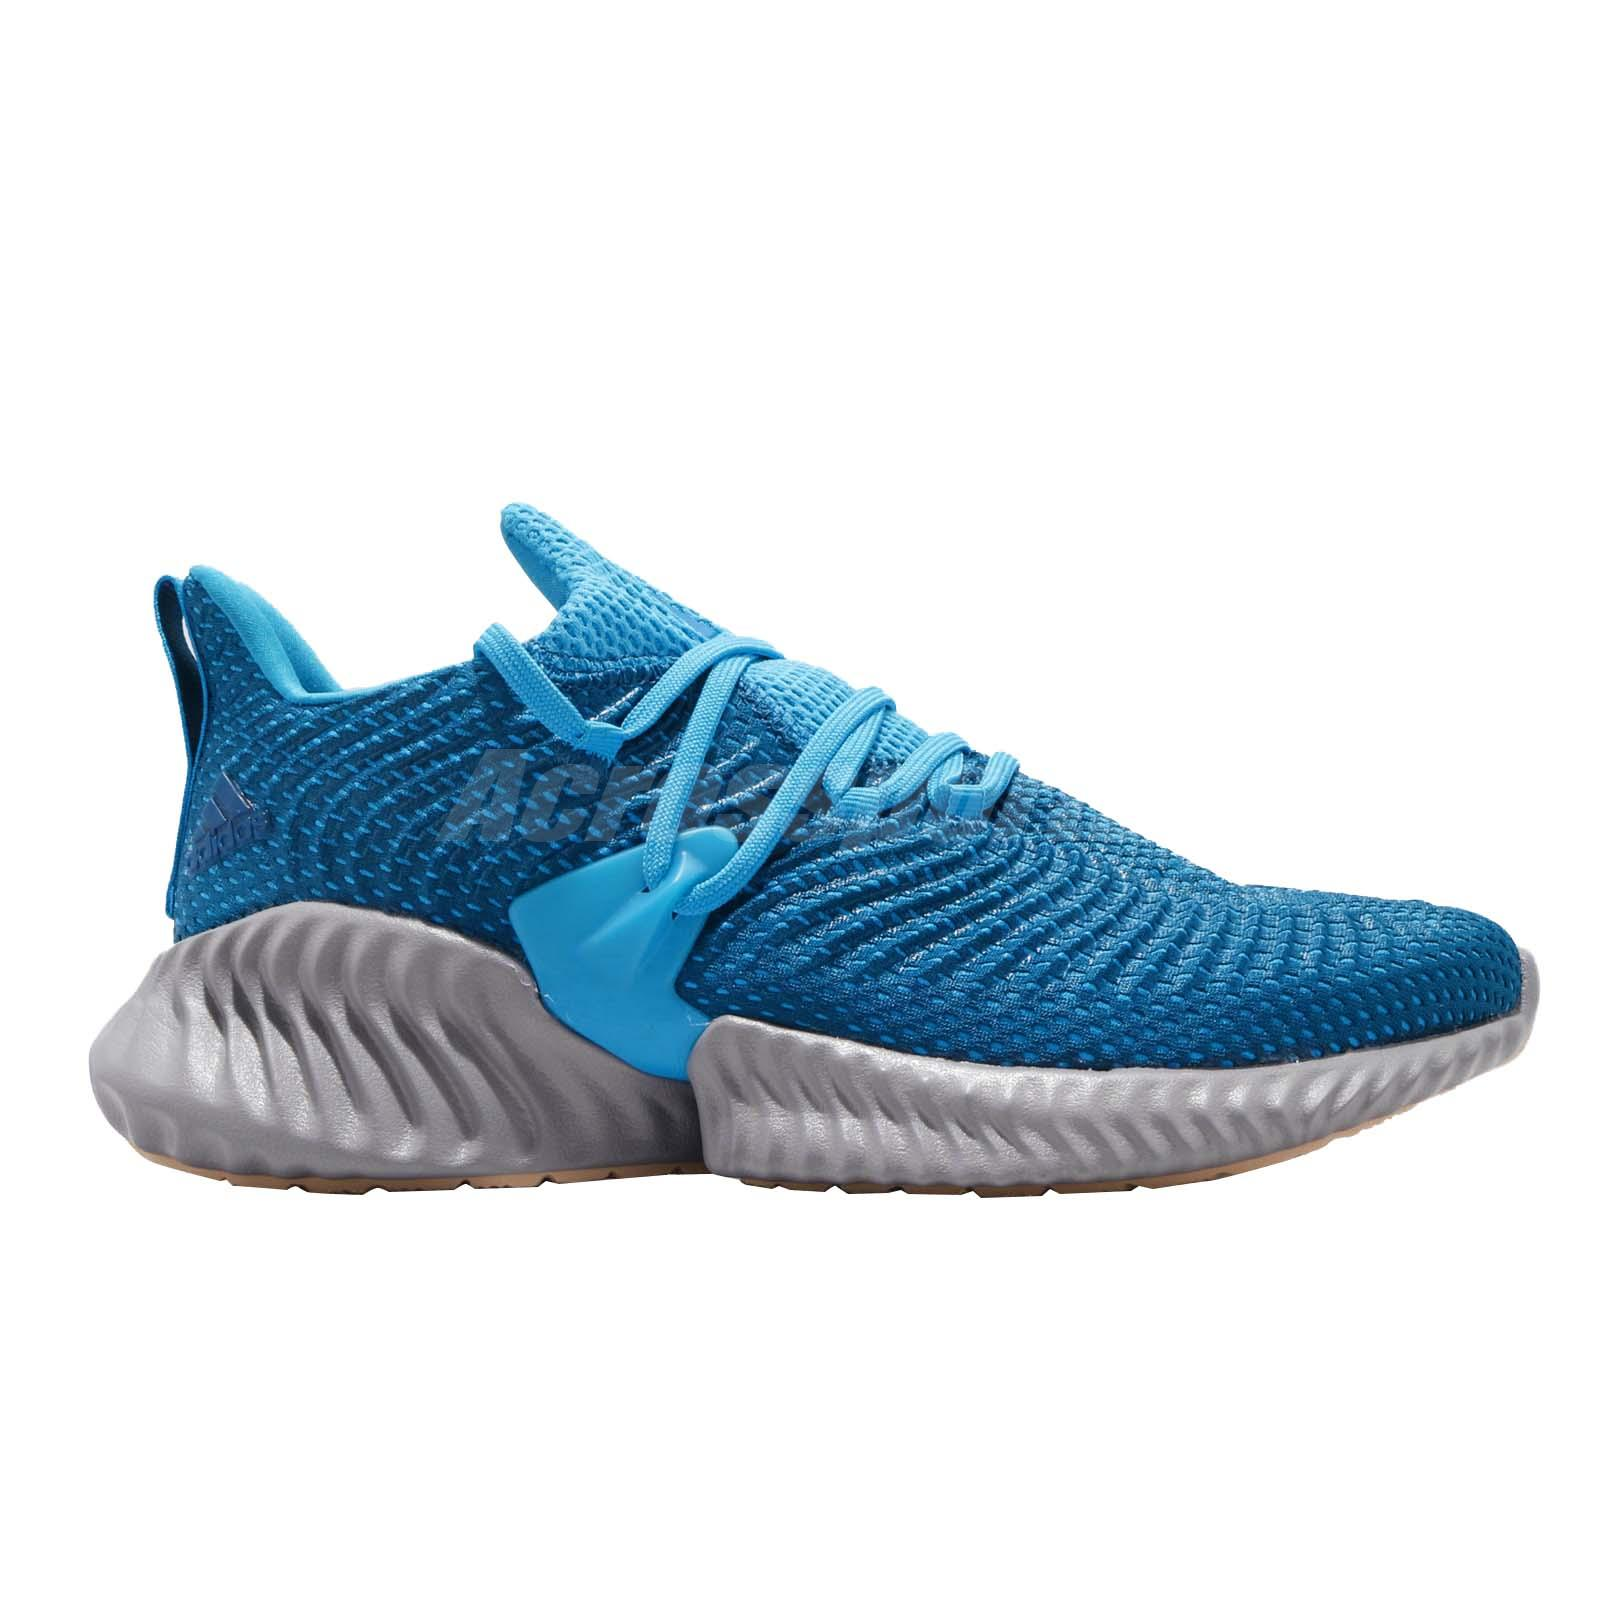 691ae85b930d1 adidas Alphabounce Instinct M Blue Grey Men Running Training Shoe ...